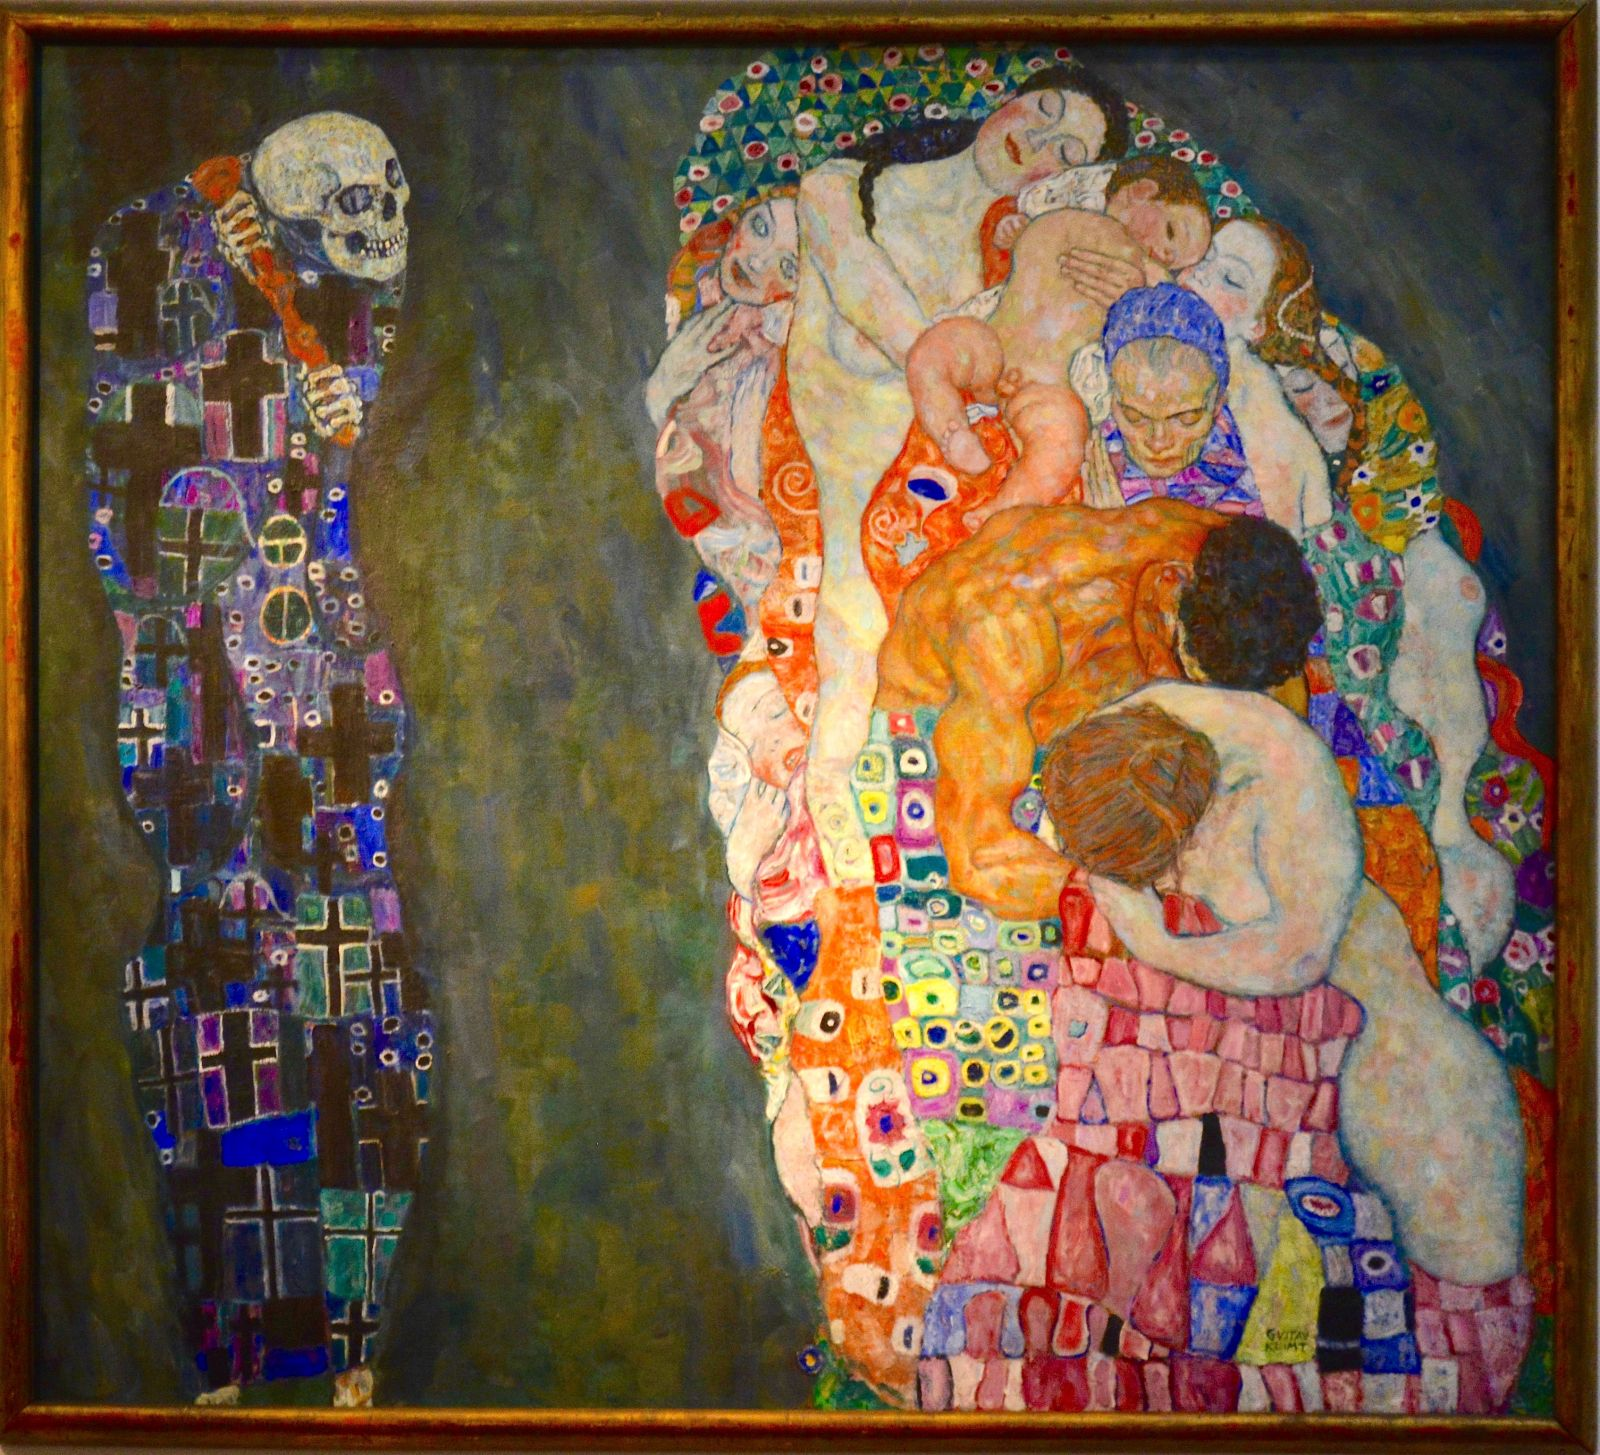 death-and-life-klimt-leopold-museum-vienna